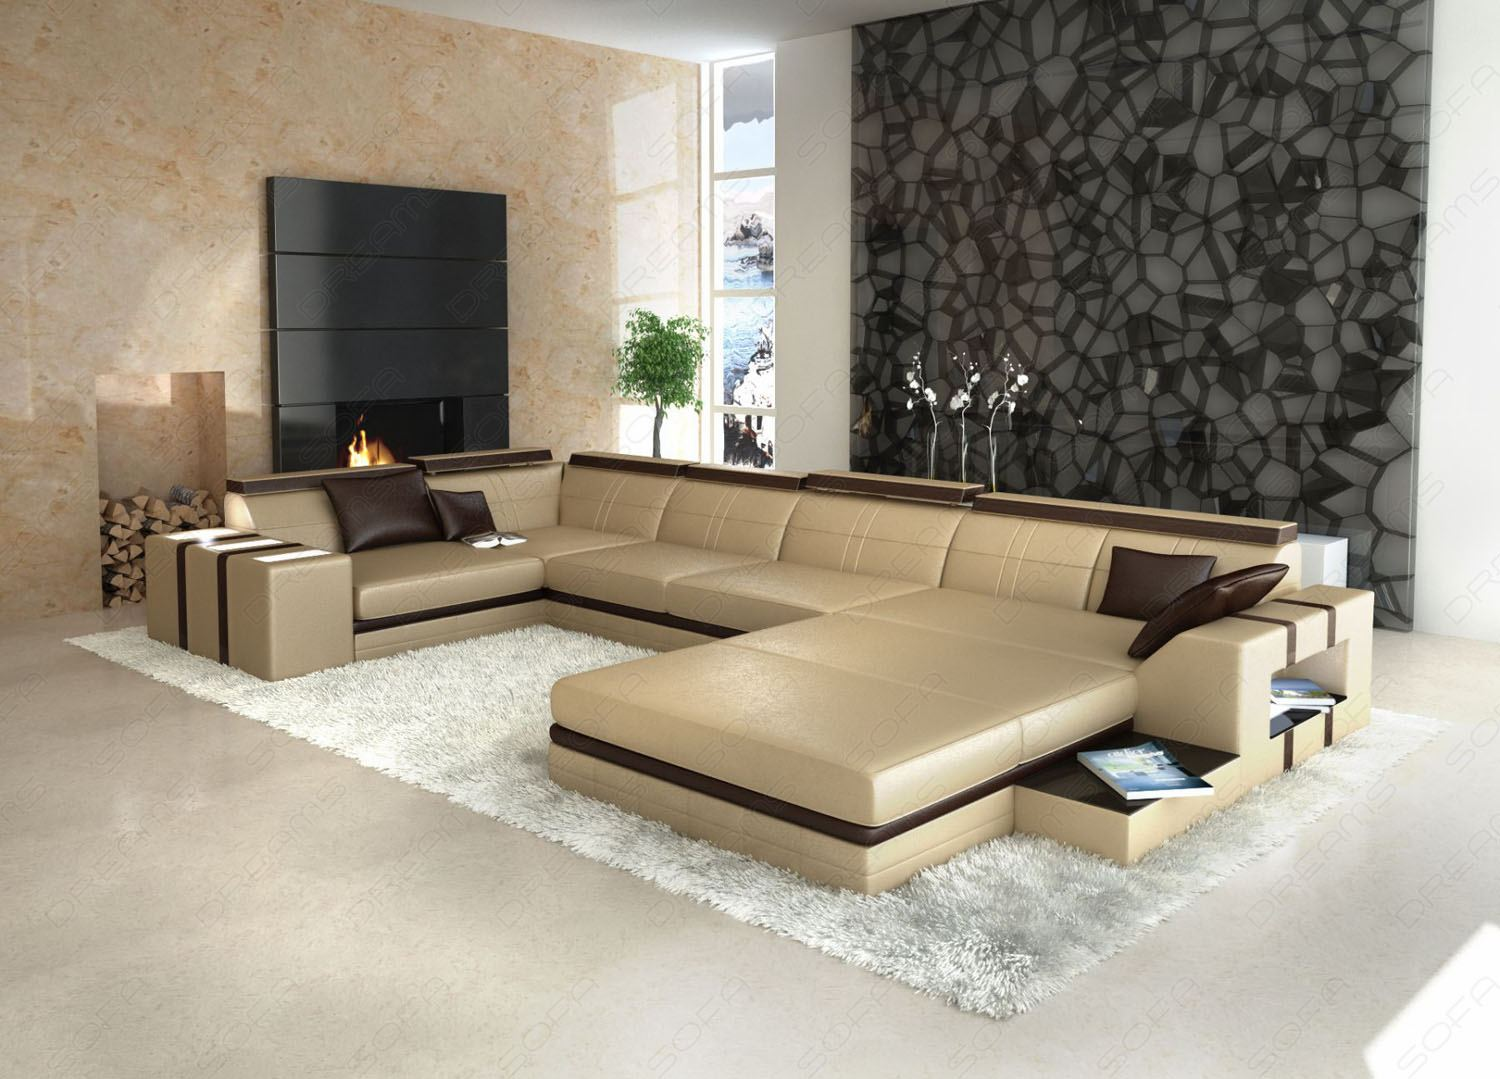 Couch braun beige best 25 couch ideas on pinterest xxl sofa bei roller carprola for mega sofa Big sofa xxl wohnlandschaft